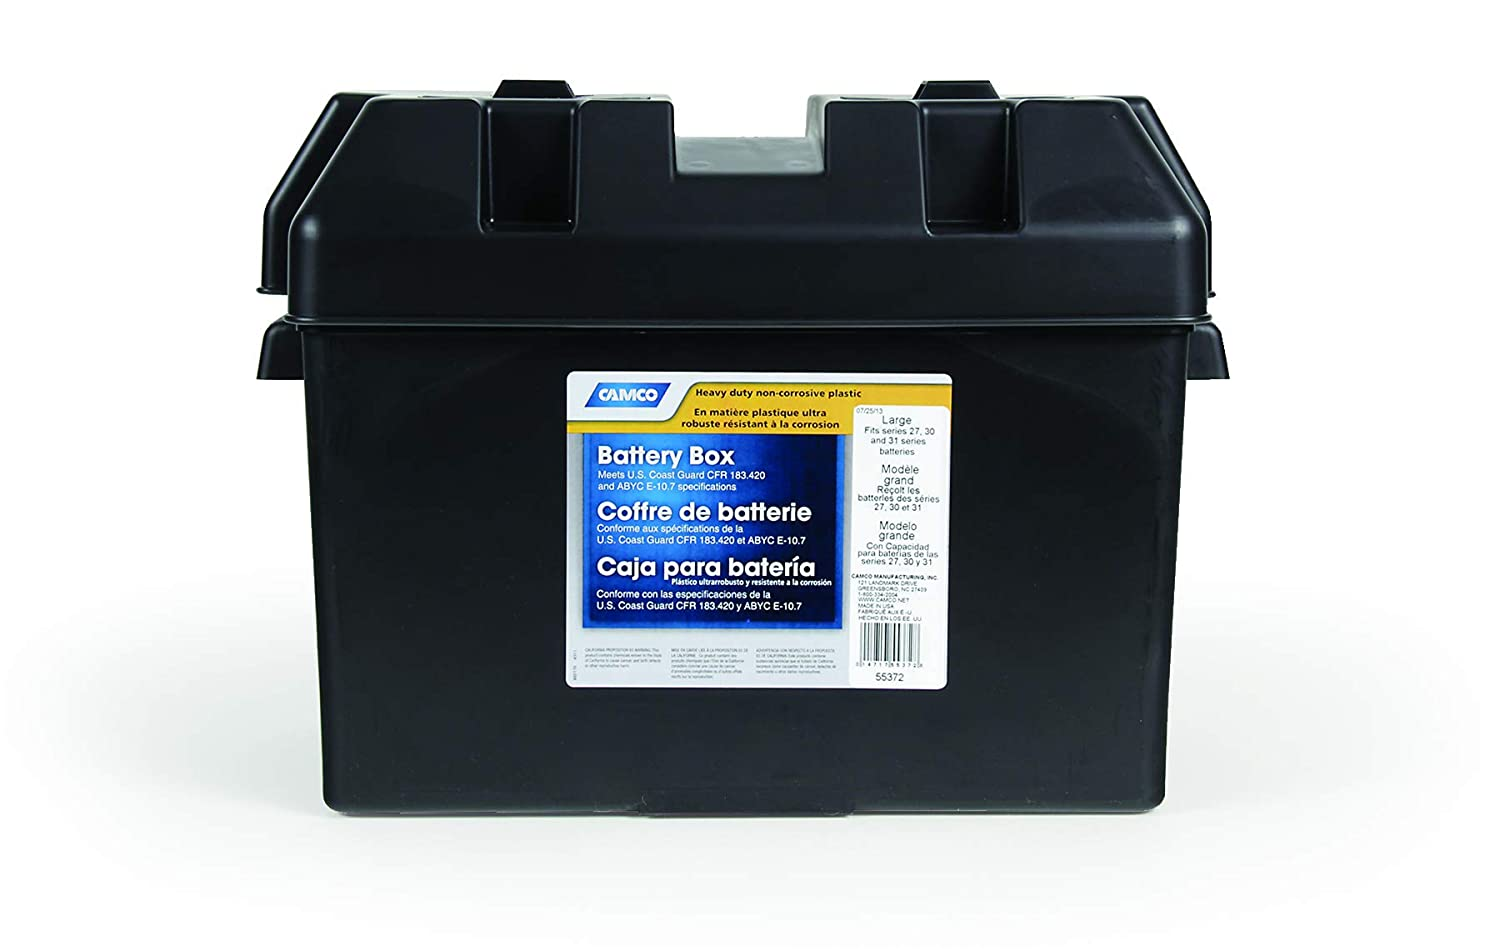 Measures 7 /¼ x 10 /¾ x 8 - Group 24 |Safely Stores RV and Marine Batteries |Durable Anti-Corrosion Material Automotive Camco Heavy Duty Battery Box with Straps and Hardware 55362